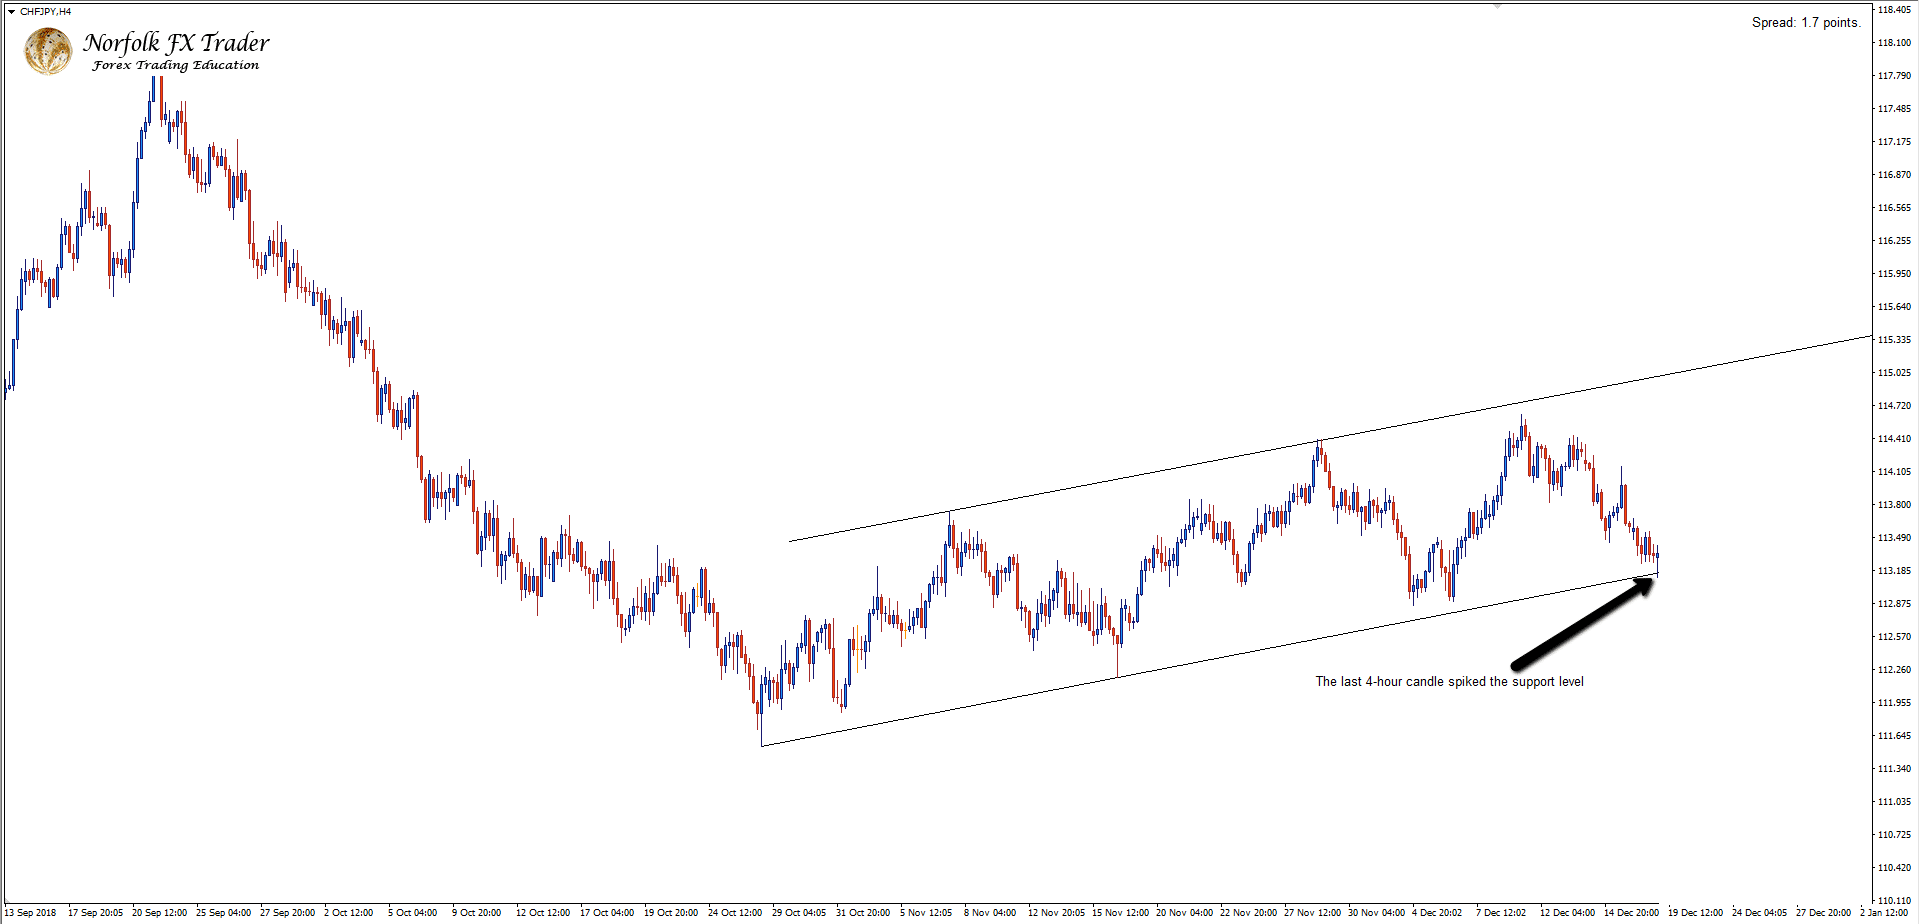 Unconfirmed 4-hour descending channel with Forex market trading